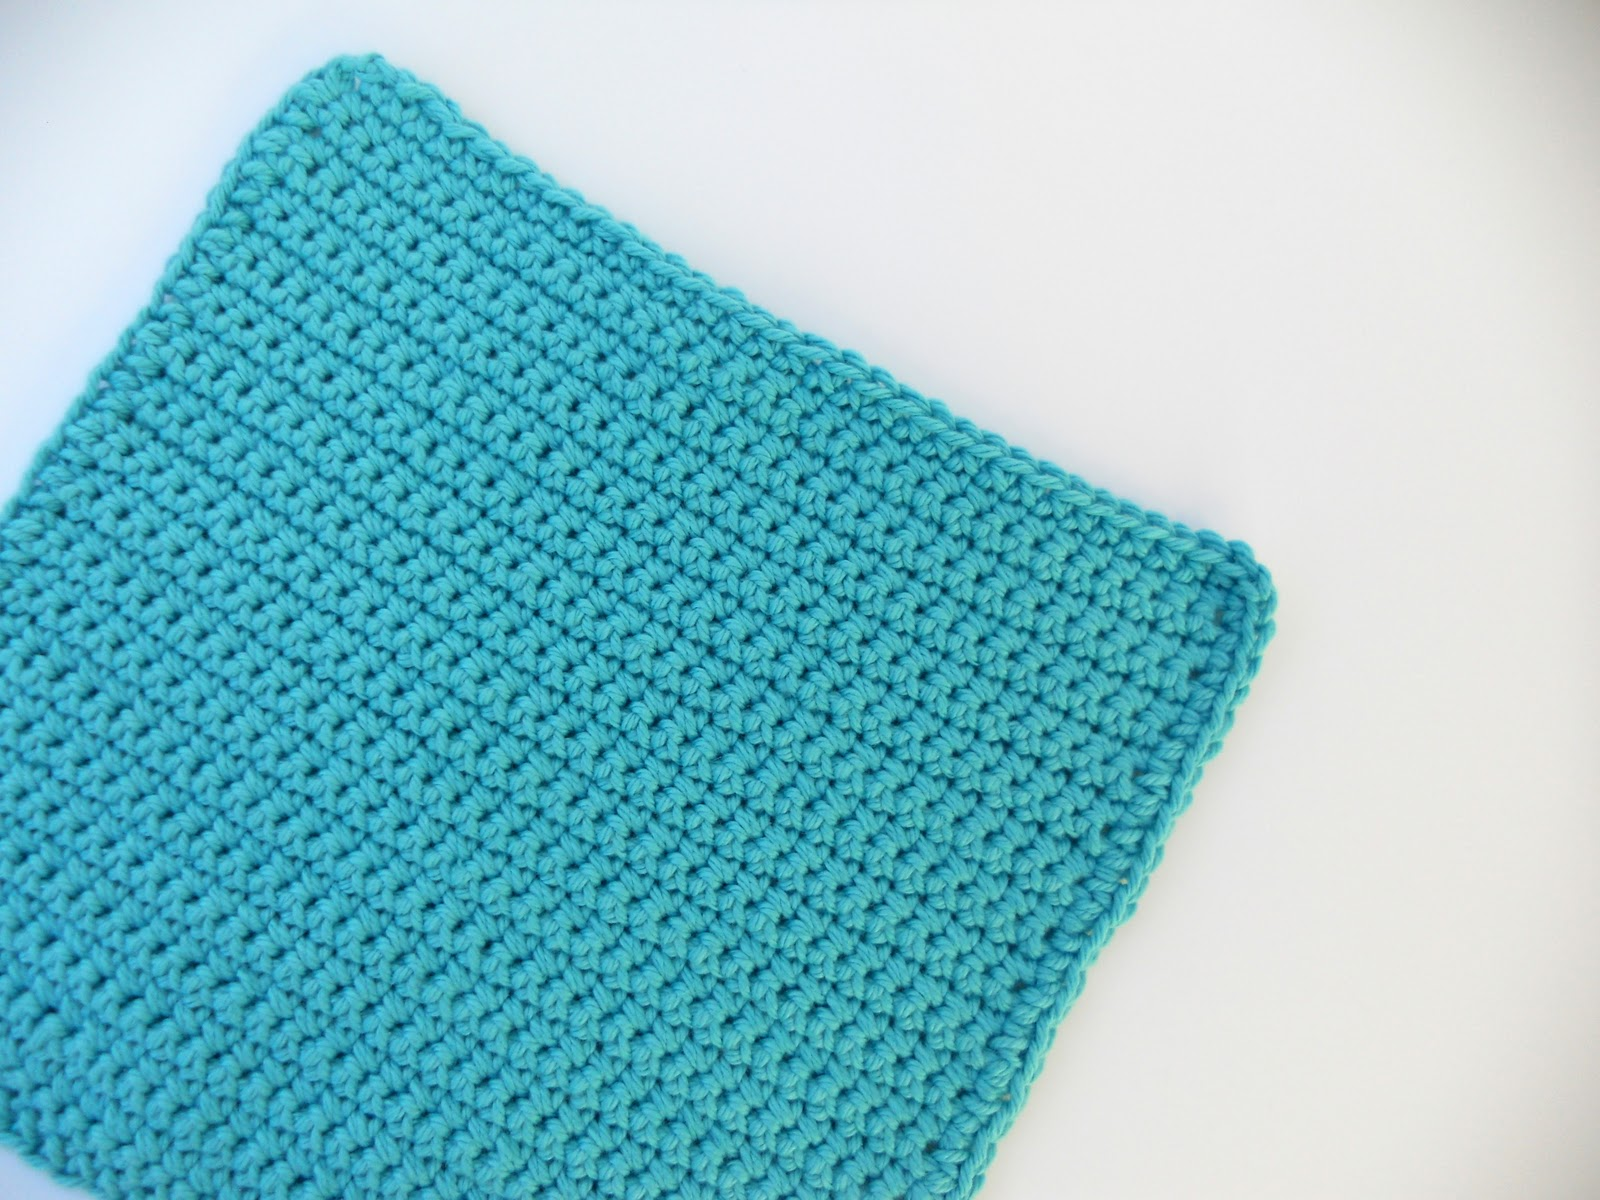 Just Another Hang Up: 100% Cotton Crocheted Dishcloths